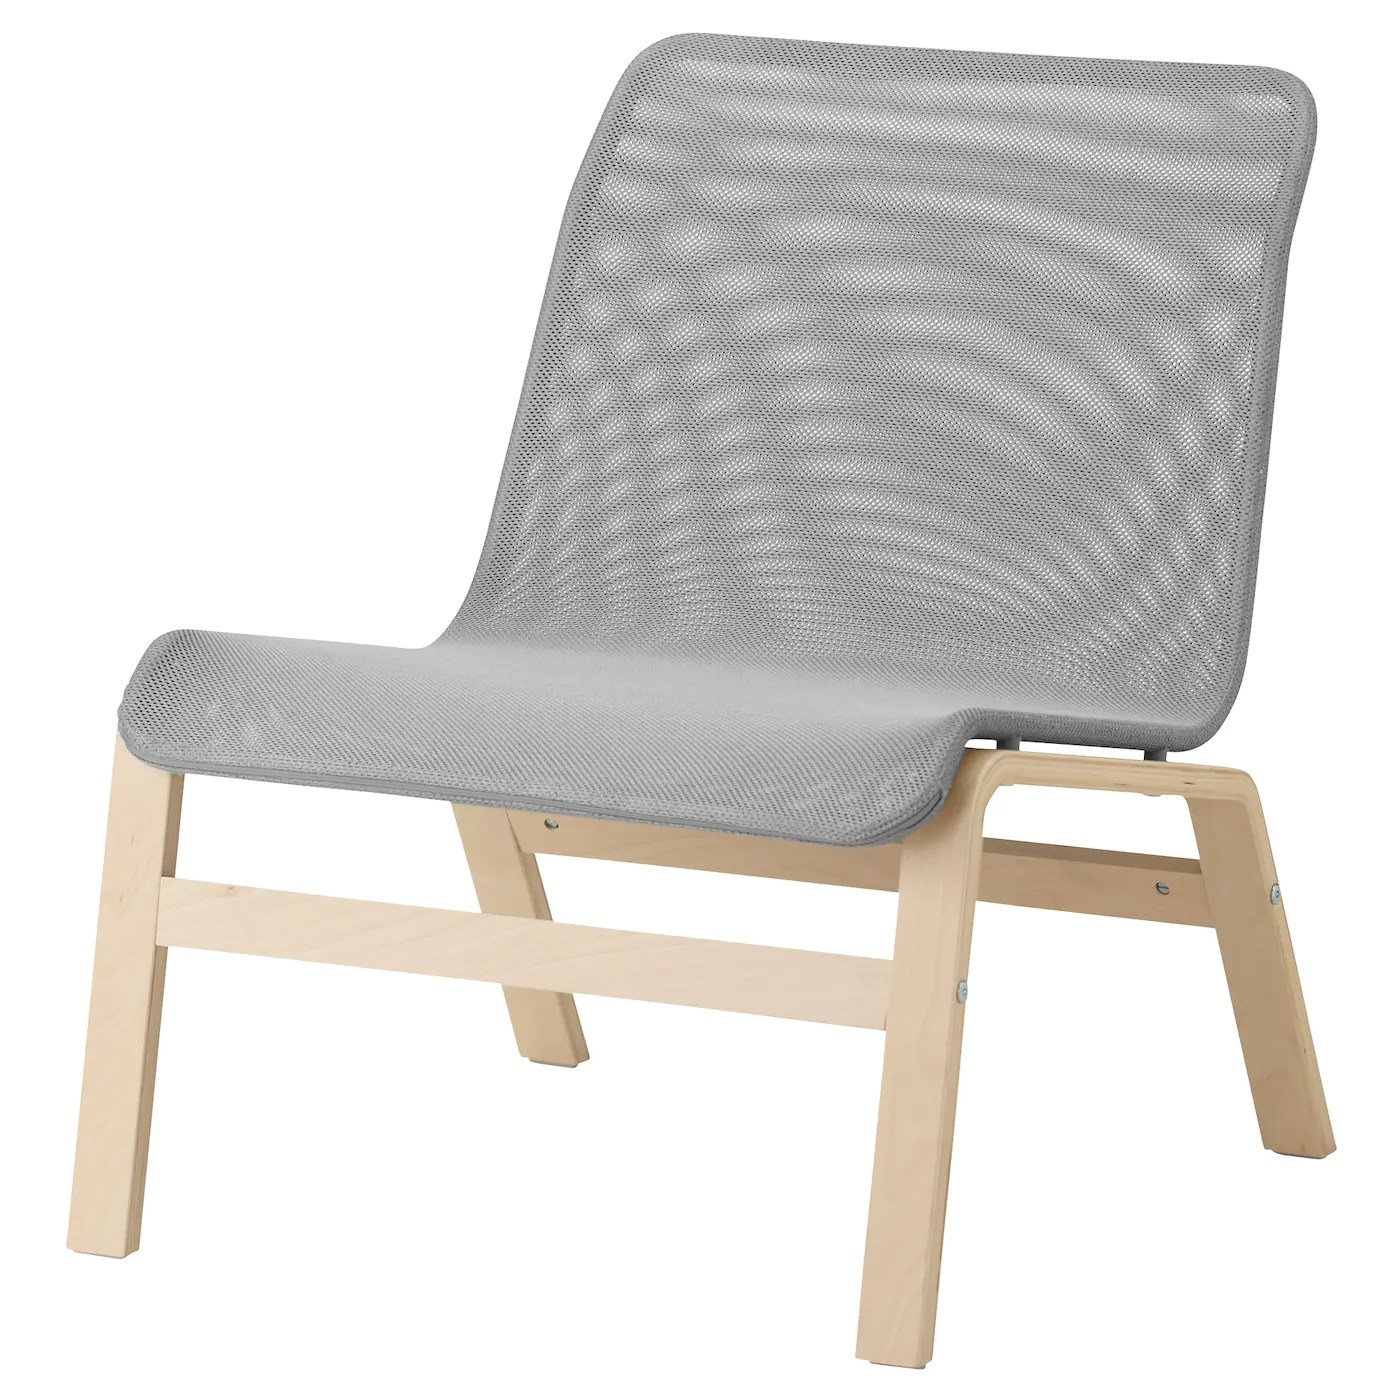 armchairs chaise lounge chairs